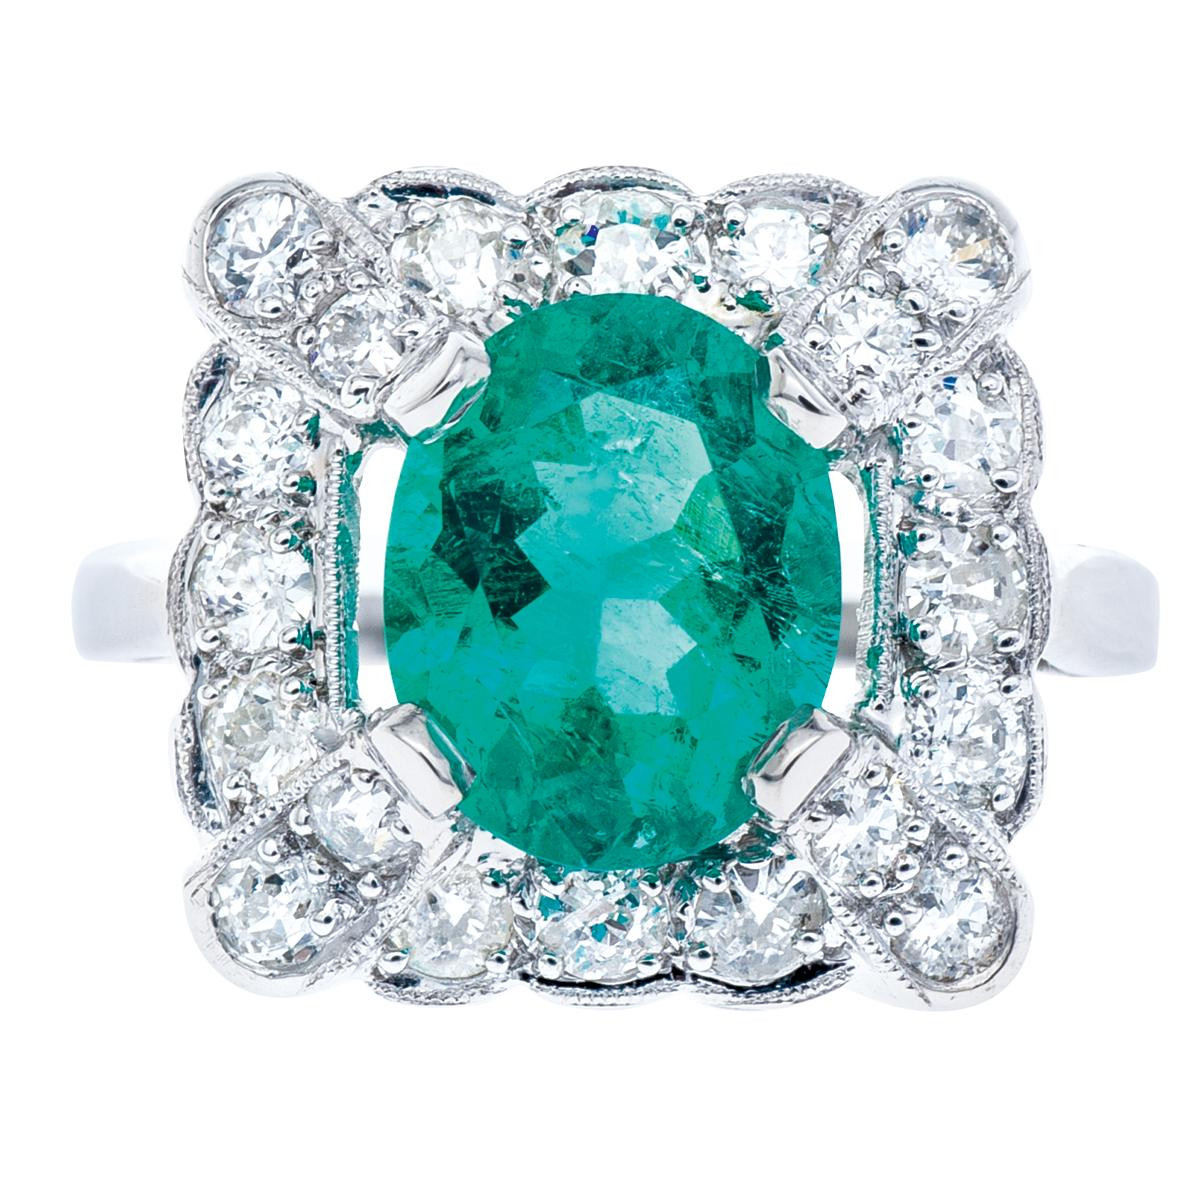 Platinum Art Deco 2.26 CTW Emerald Ring